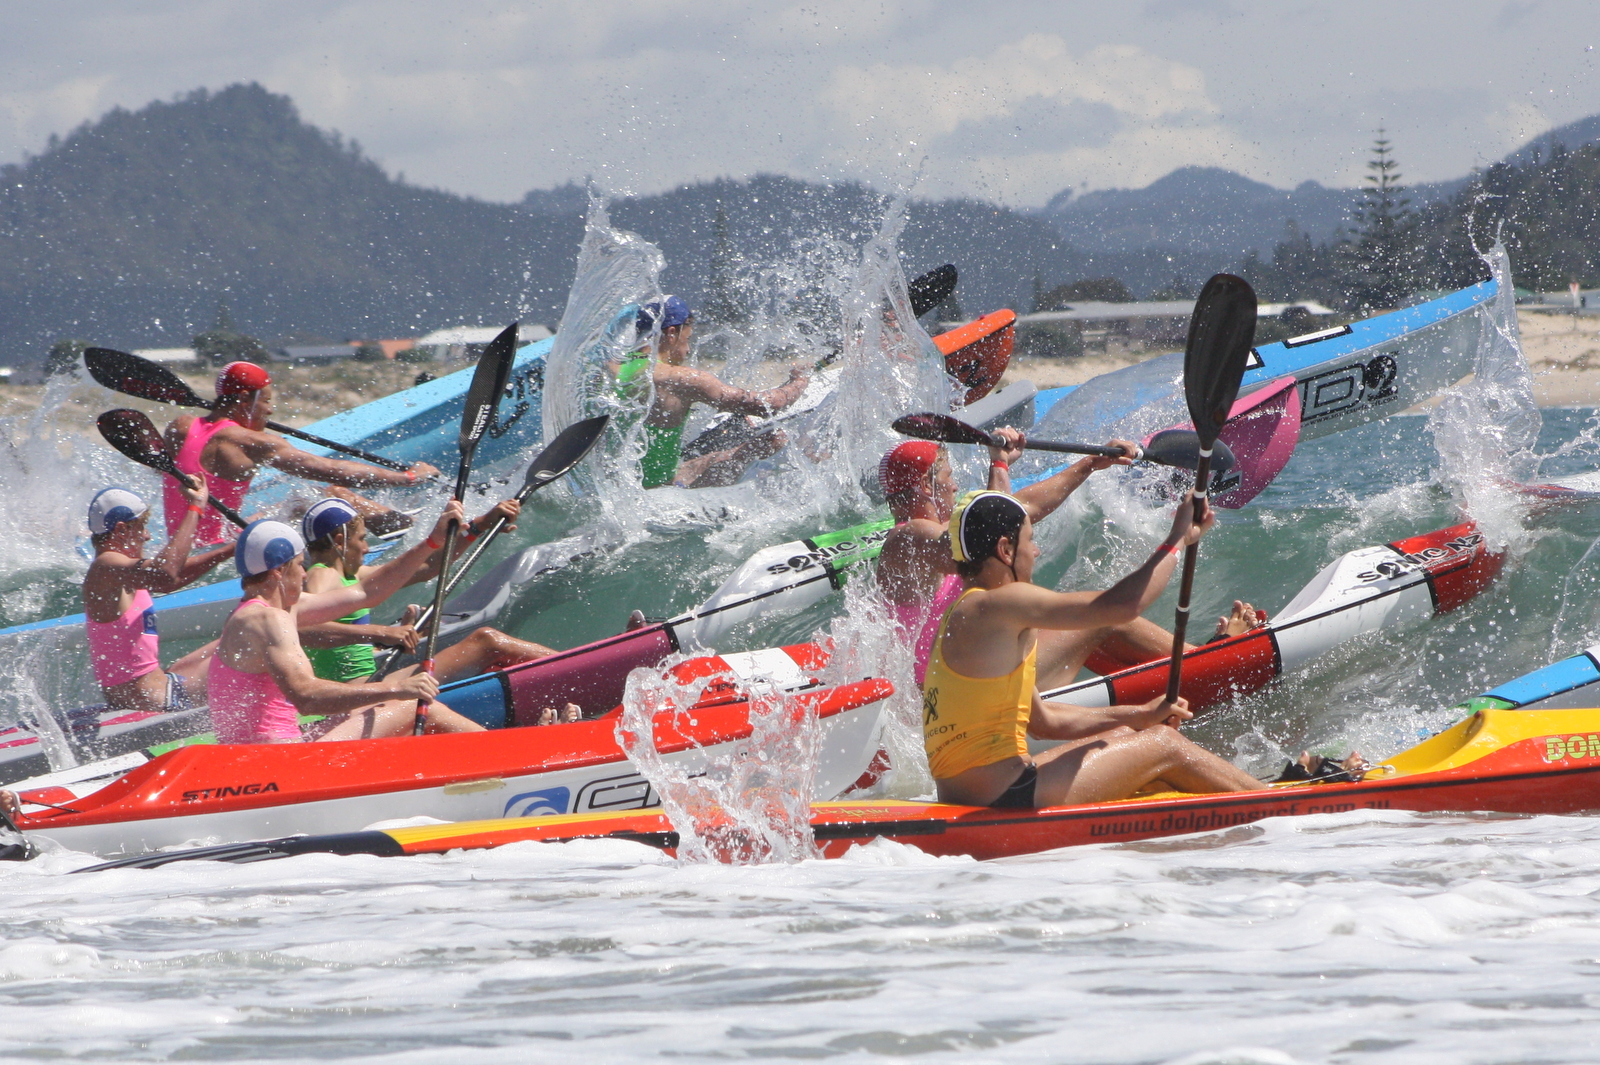 Whangamata Classic 2-day event